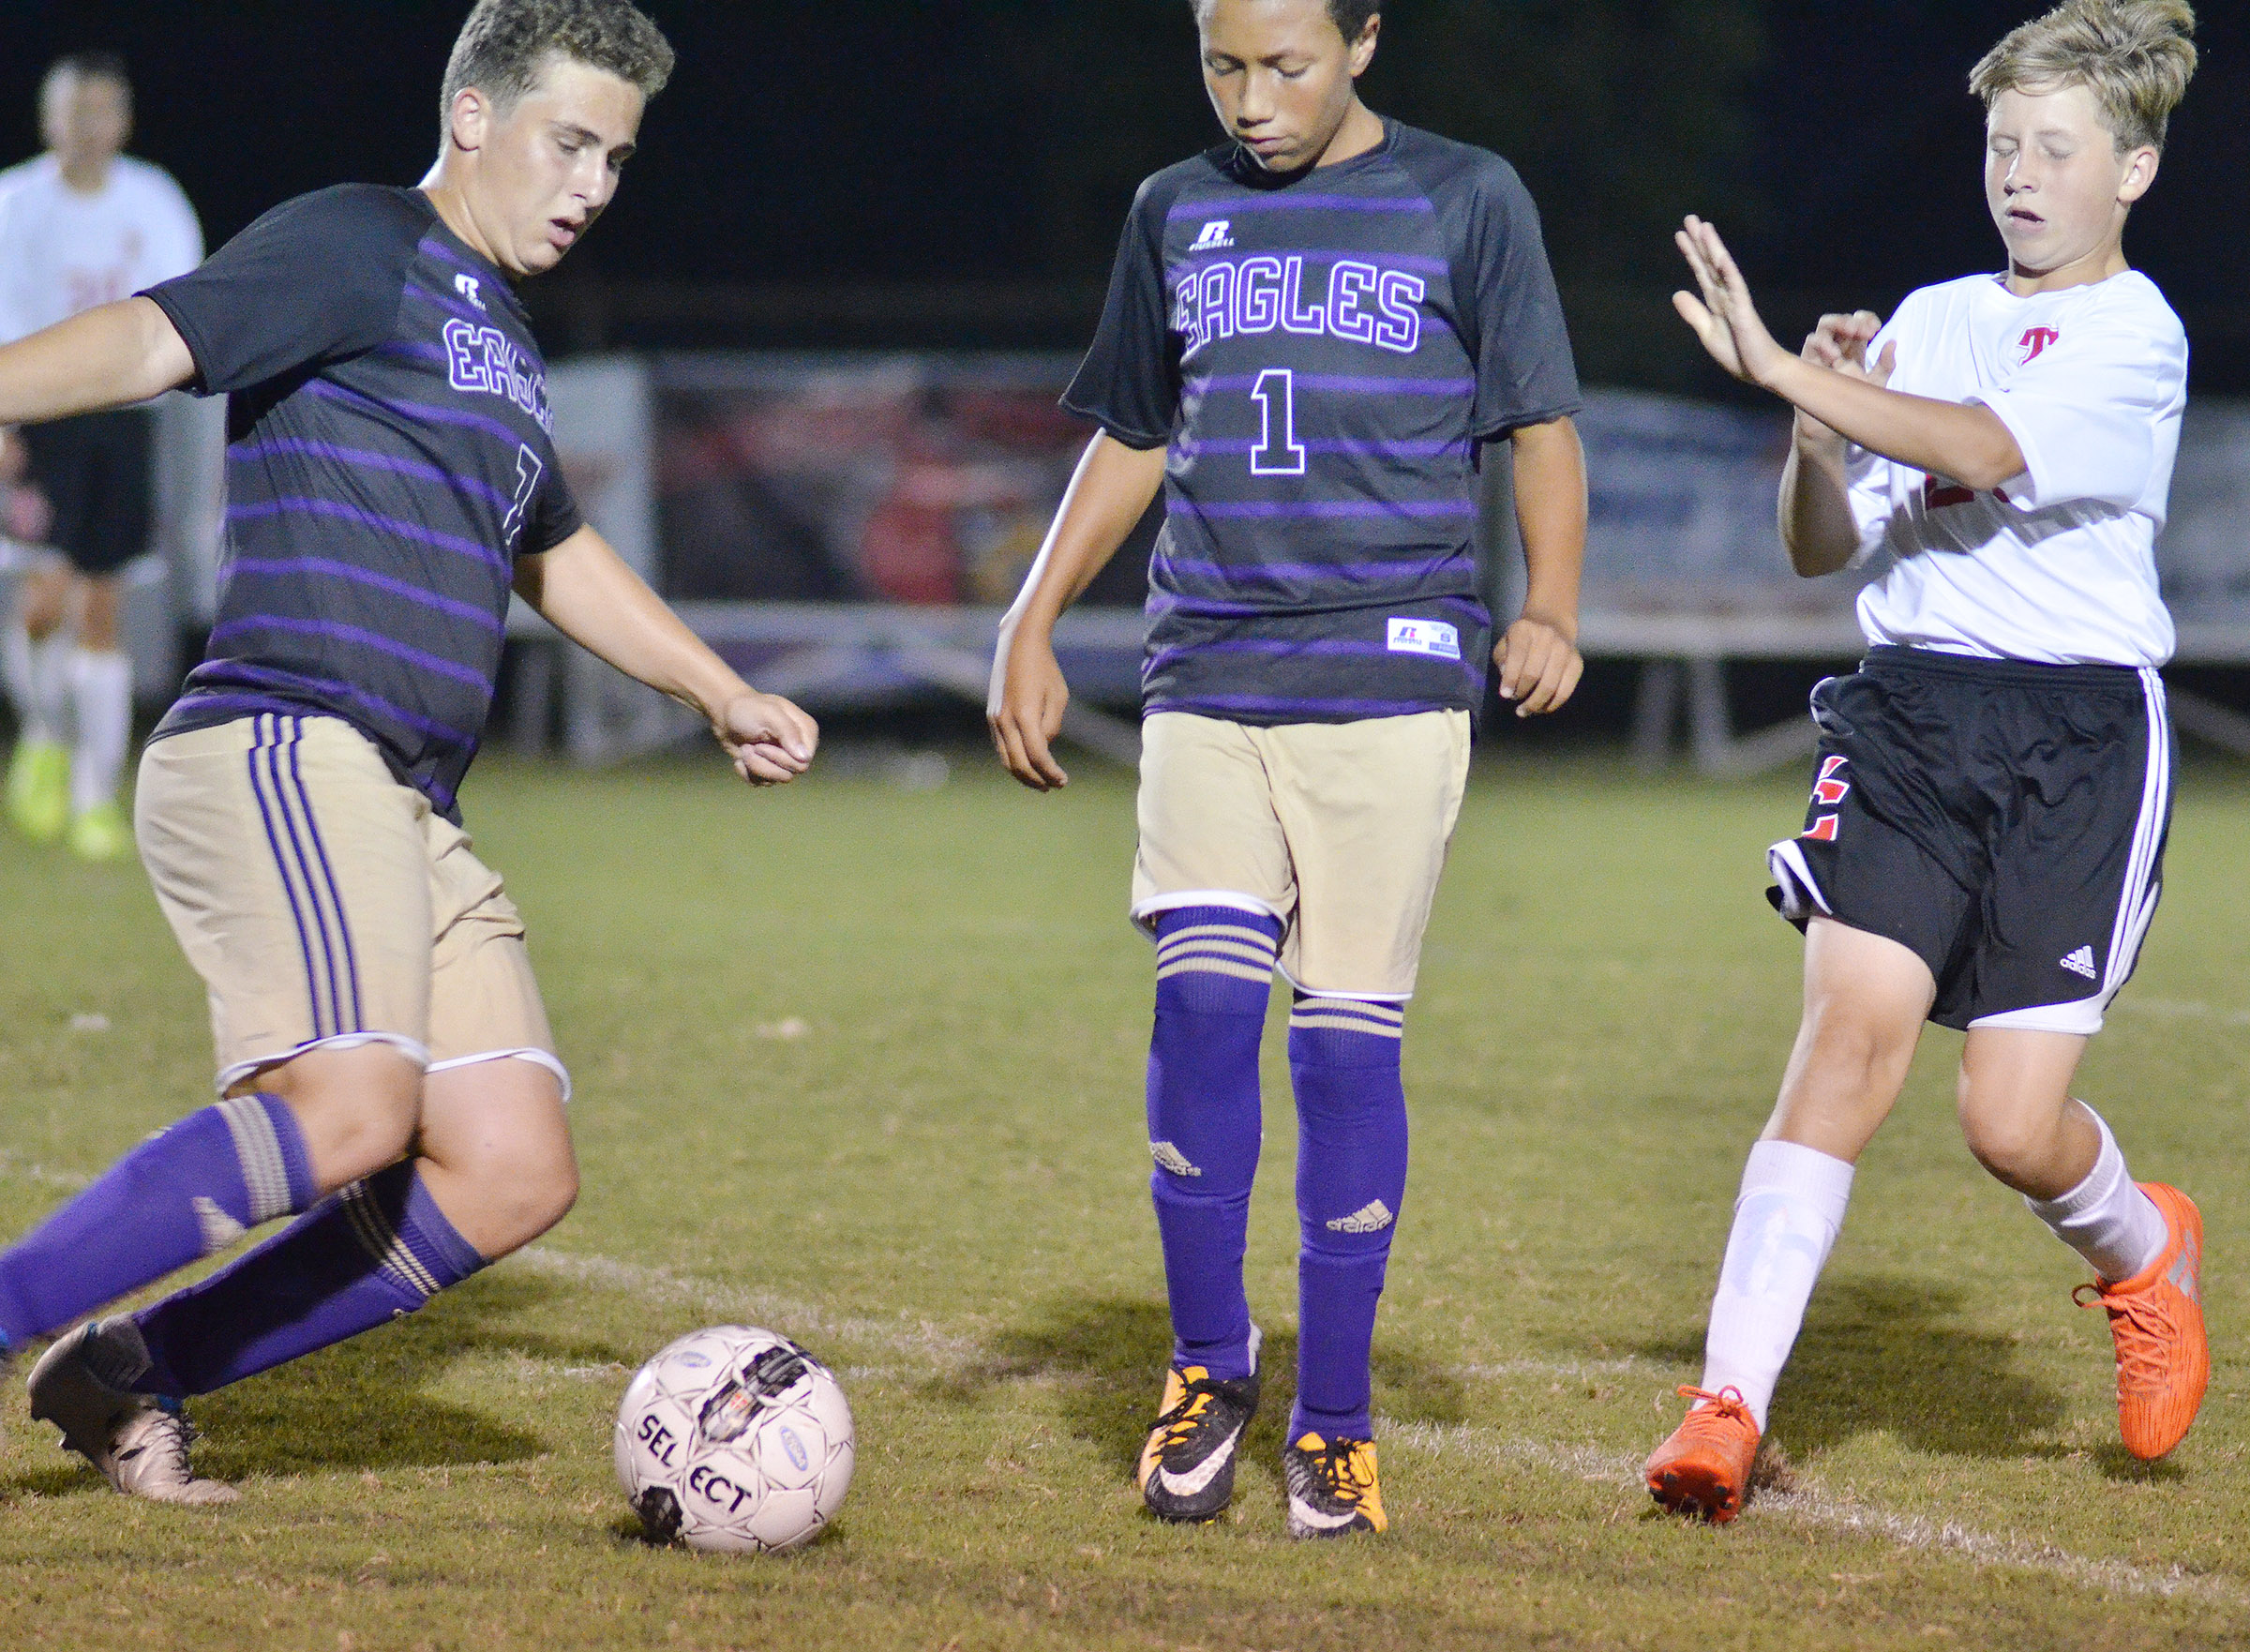 CHS junior Brody Weeks, at left, and freshman Jastyn Shively protect the ball.